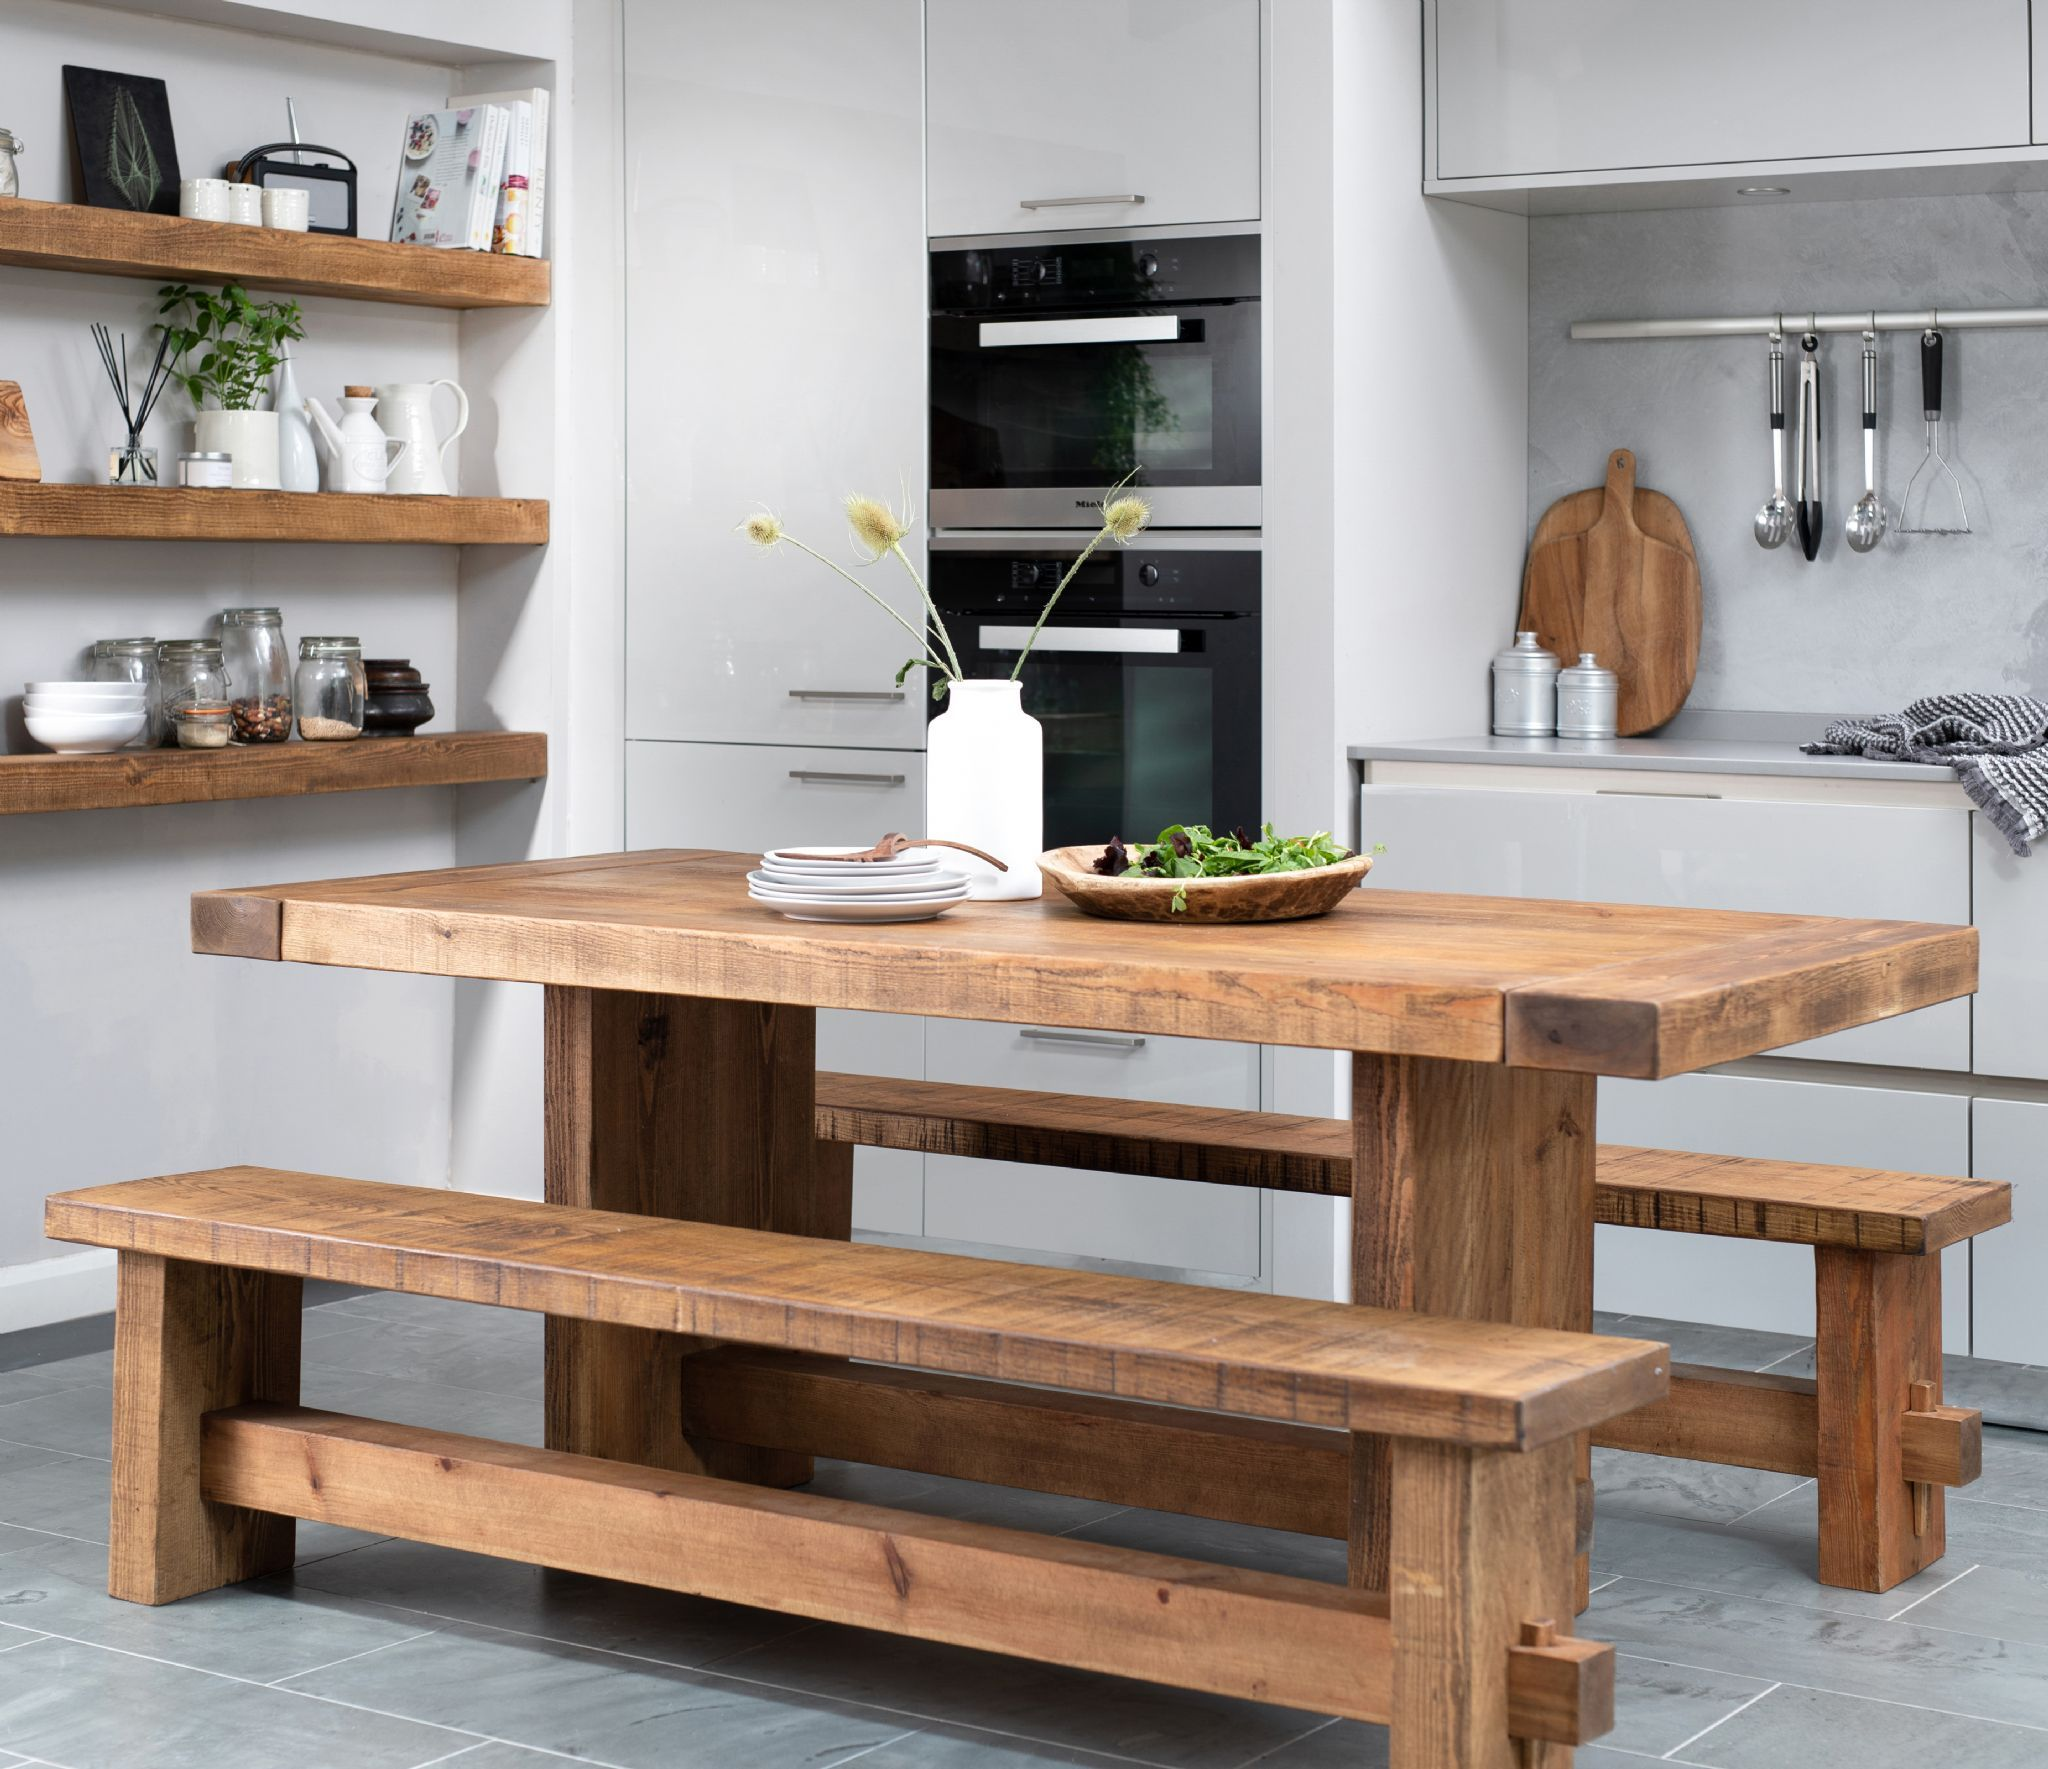 Derwent Dining Table Rustic Pine 150cm Dining Table With